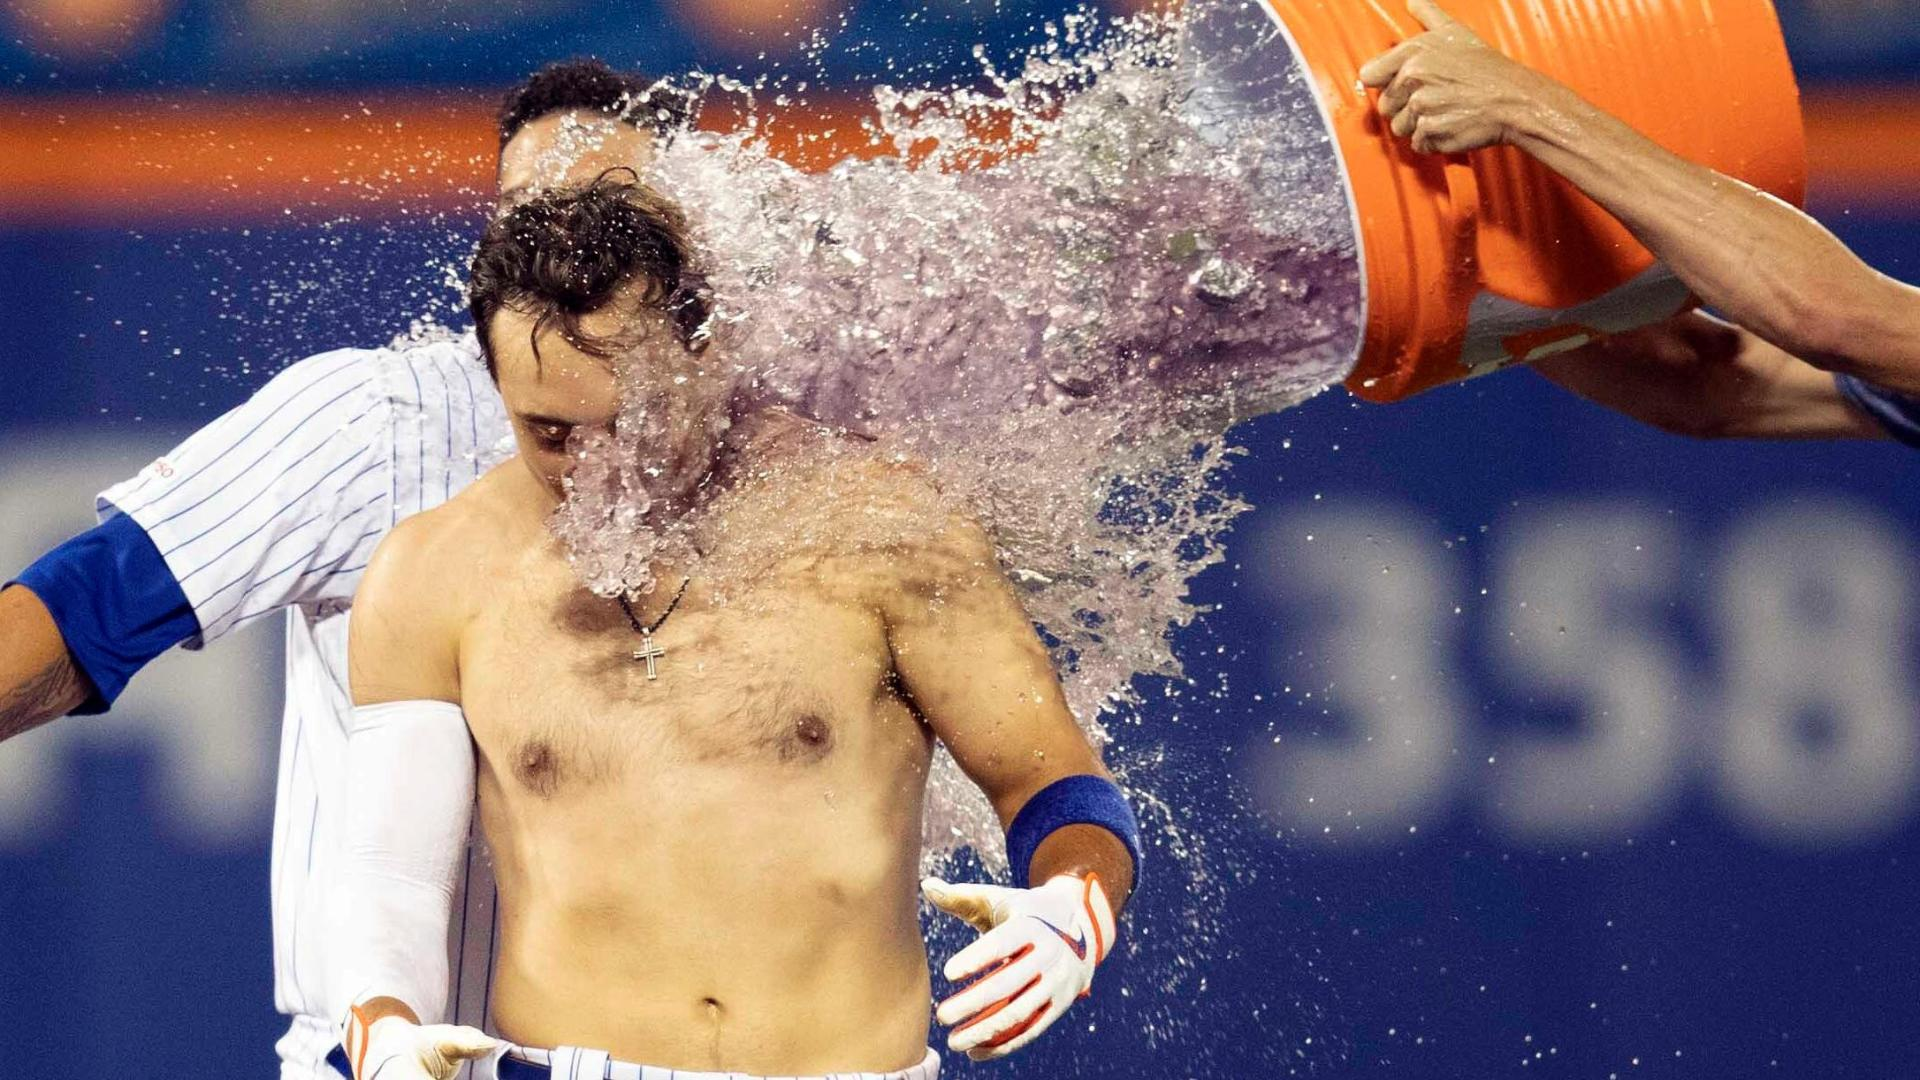 huge discount f9afd 0d307 Conforto loses shirt as streaking Mets win 7th | abc7ny.com